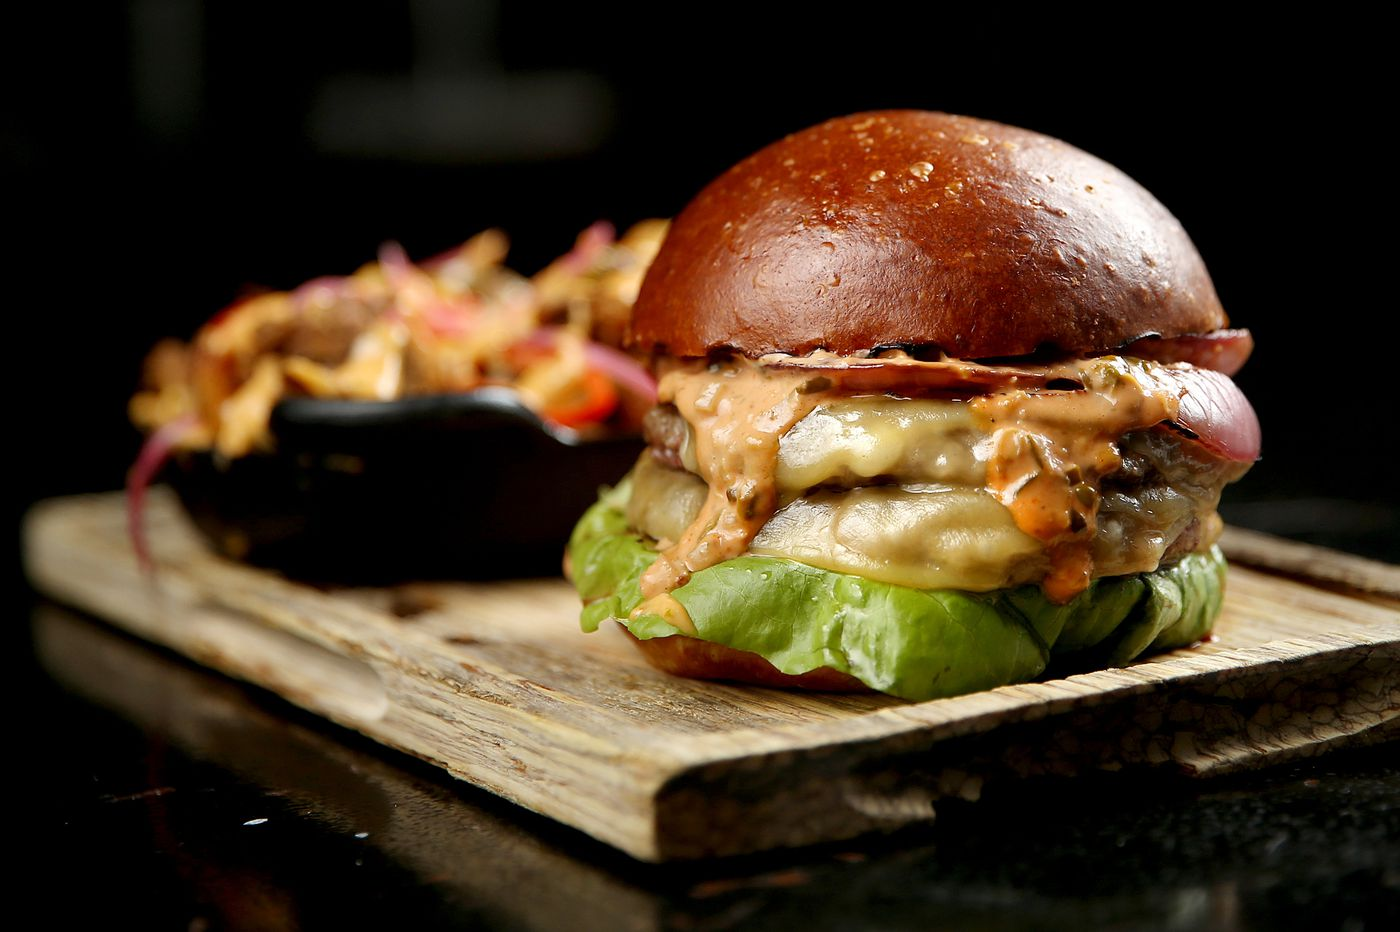 Ripplewood Whiskey & Craft review: The best burger, endless bourbon, reimagined candy bars, and more